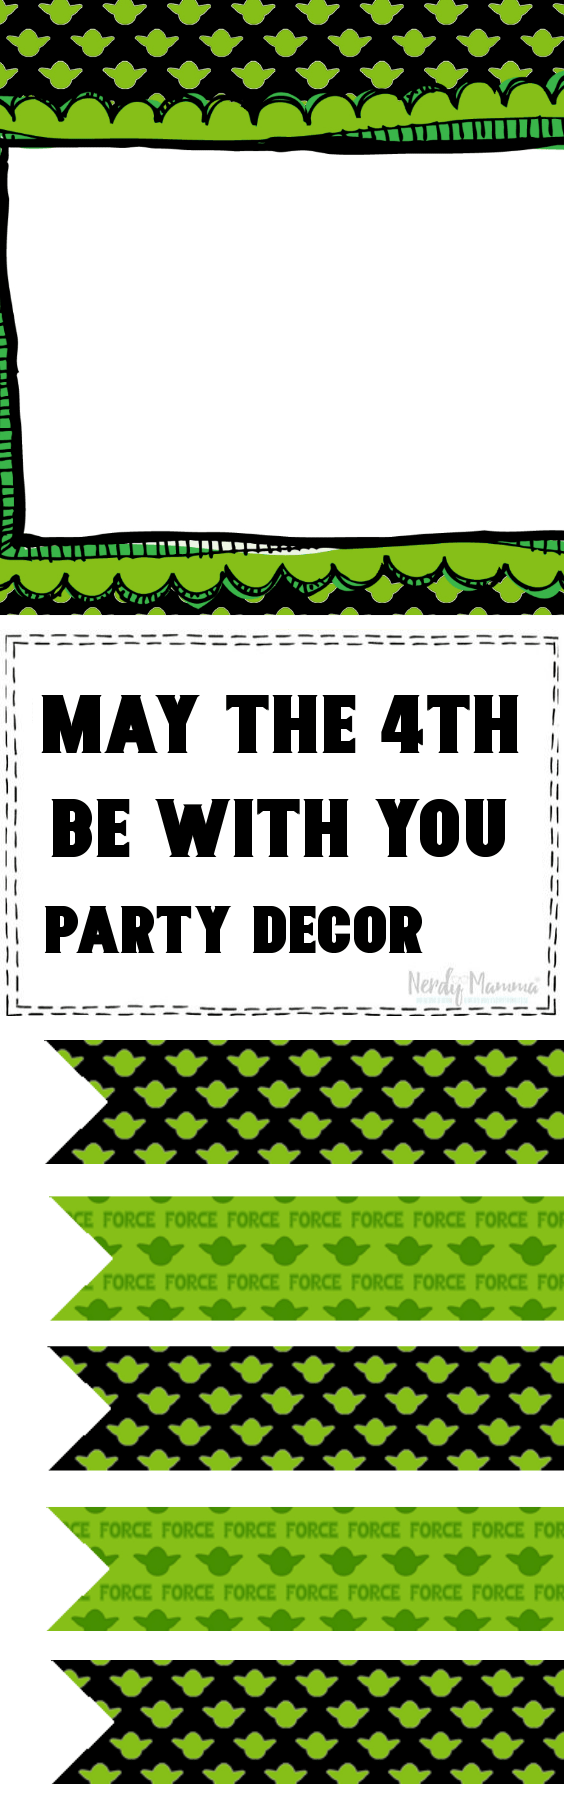 May The 4th Be With You Party Decor